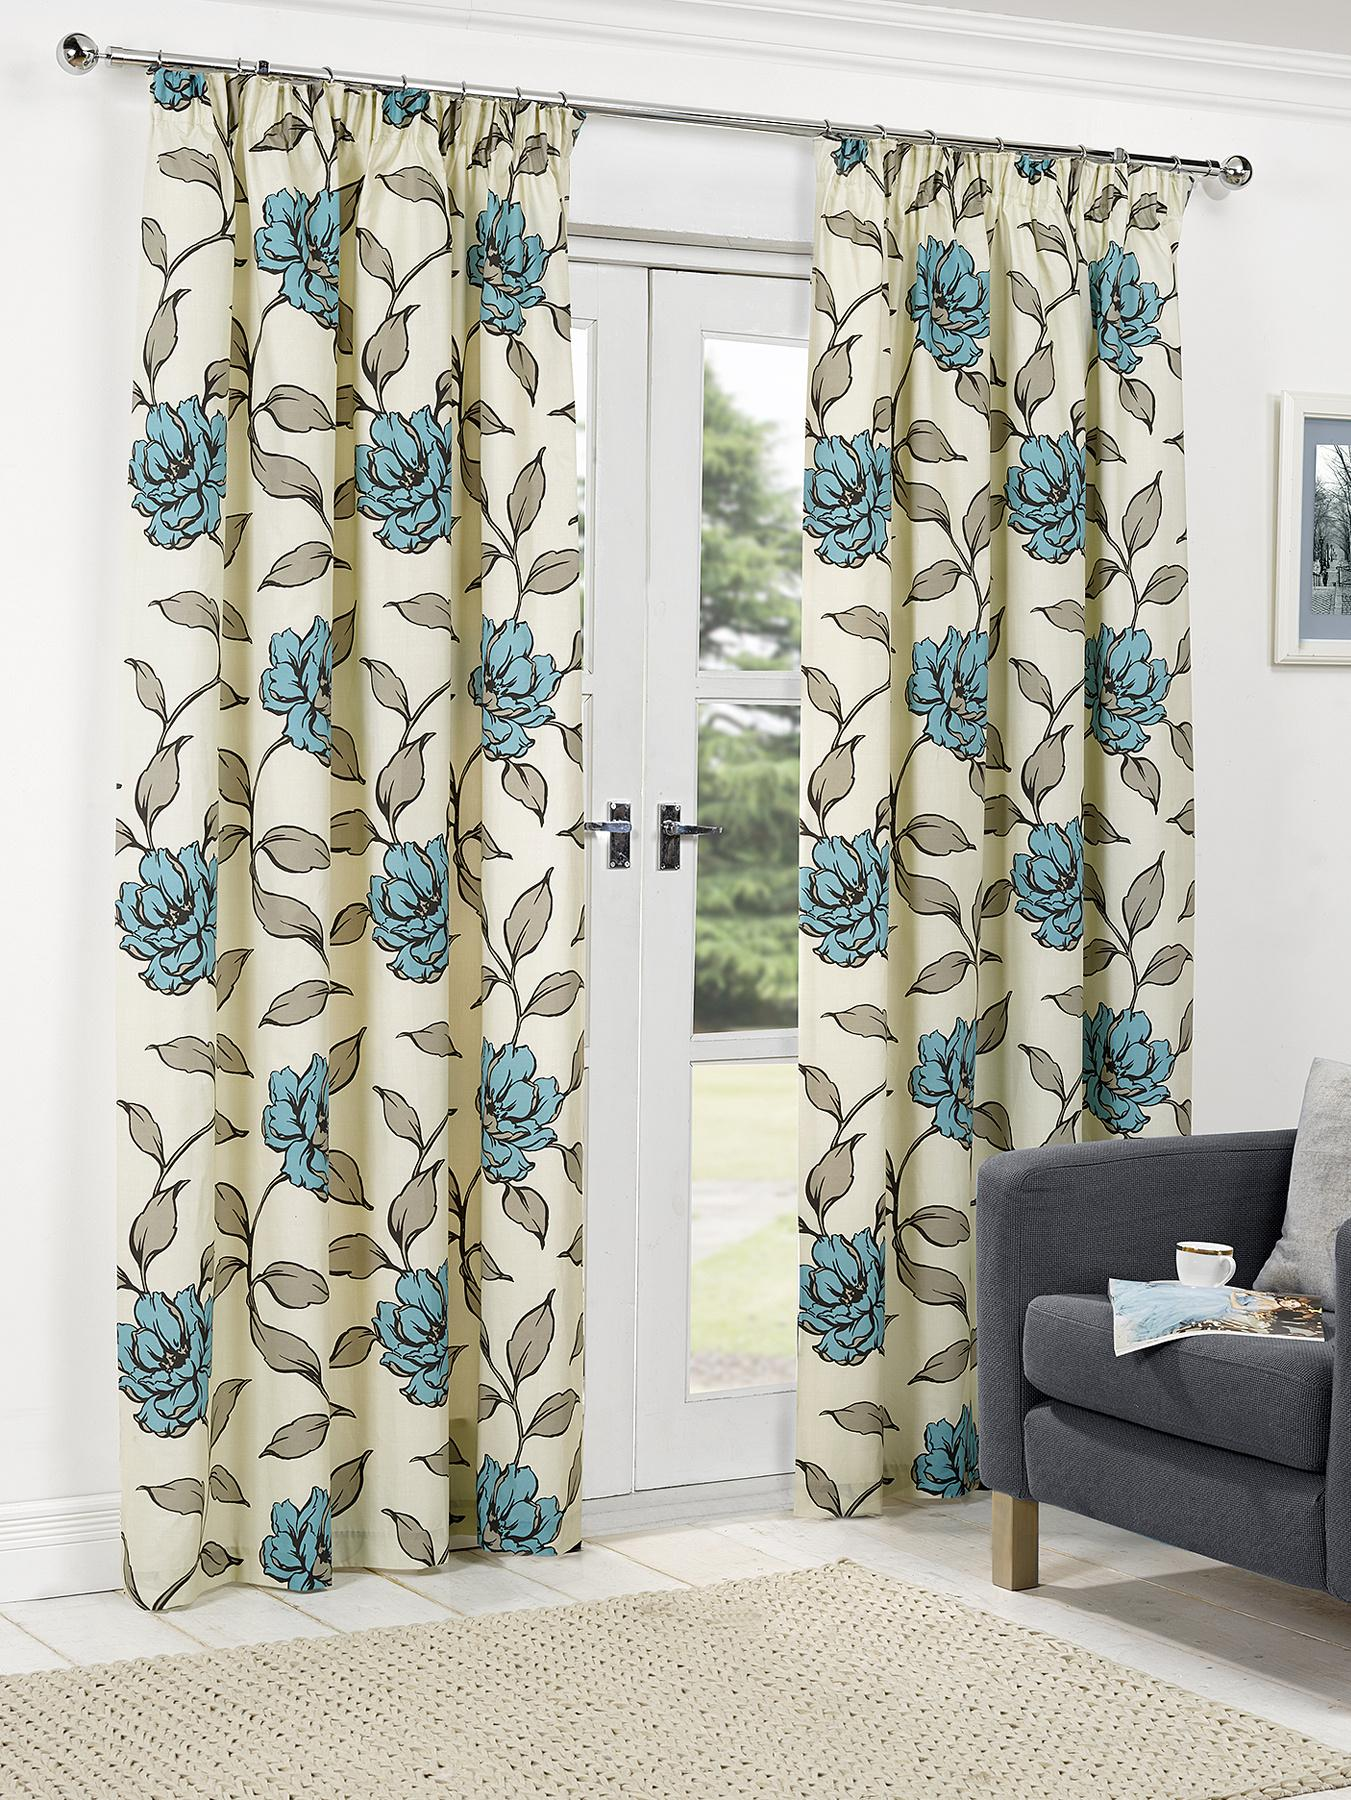 Floral Pleated Curtains - Teal, Teal,Red